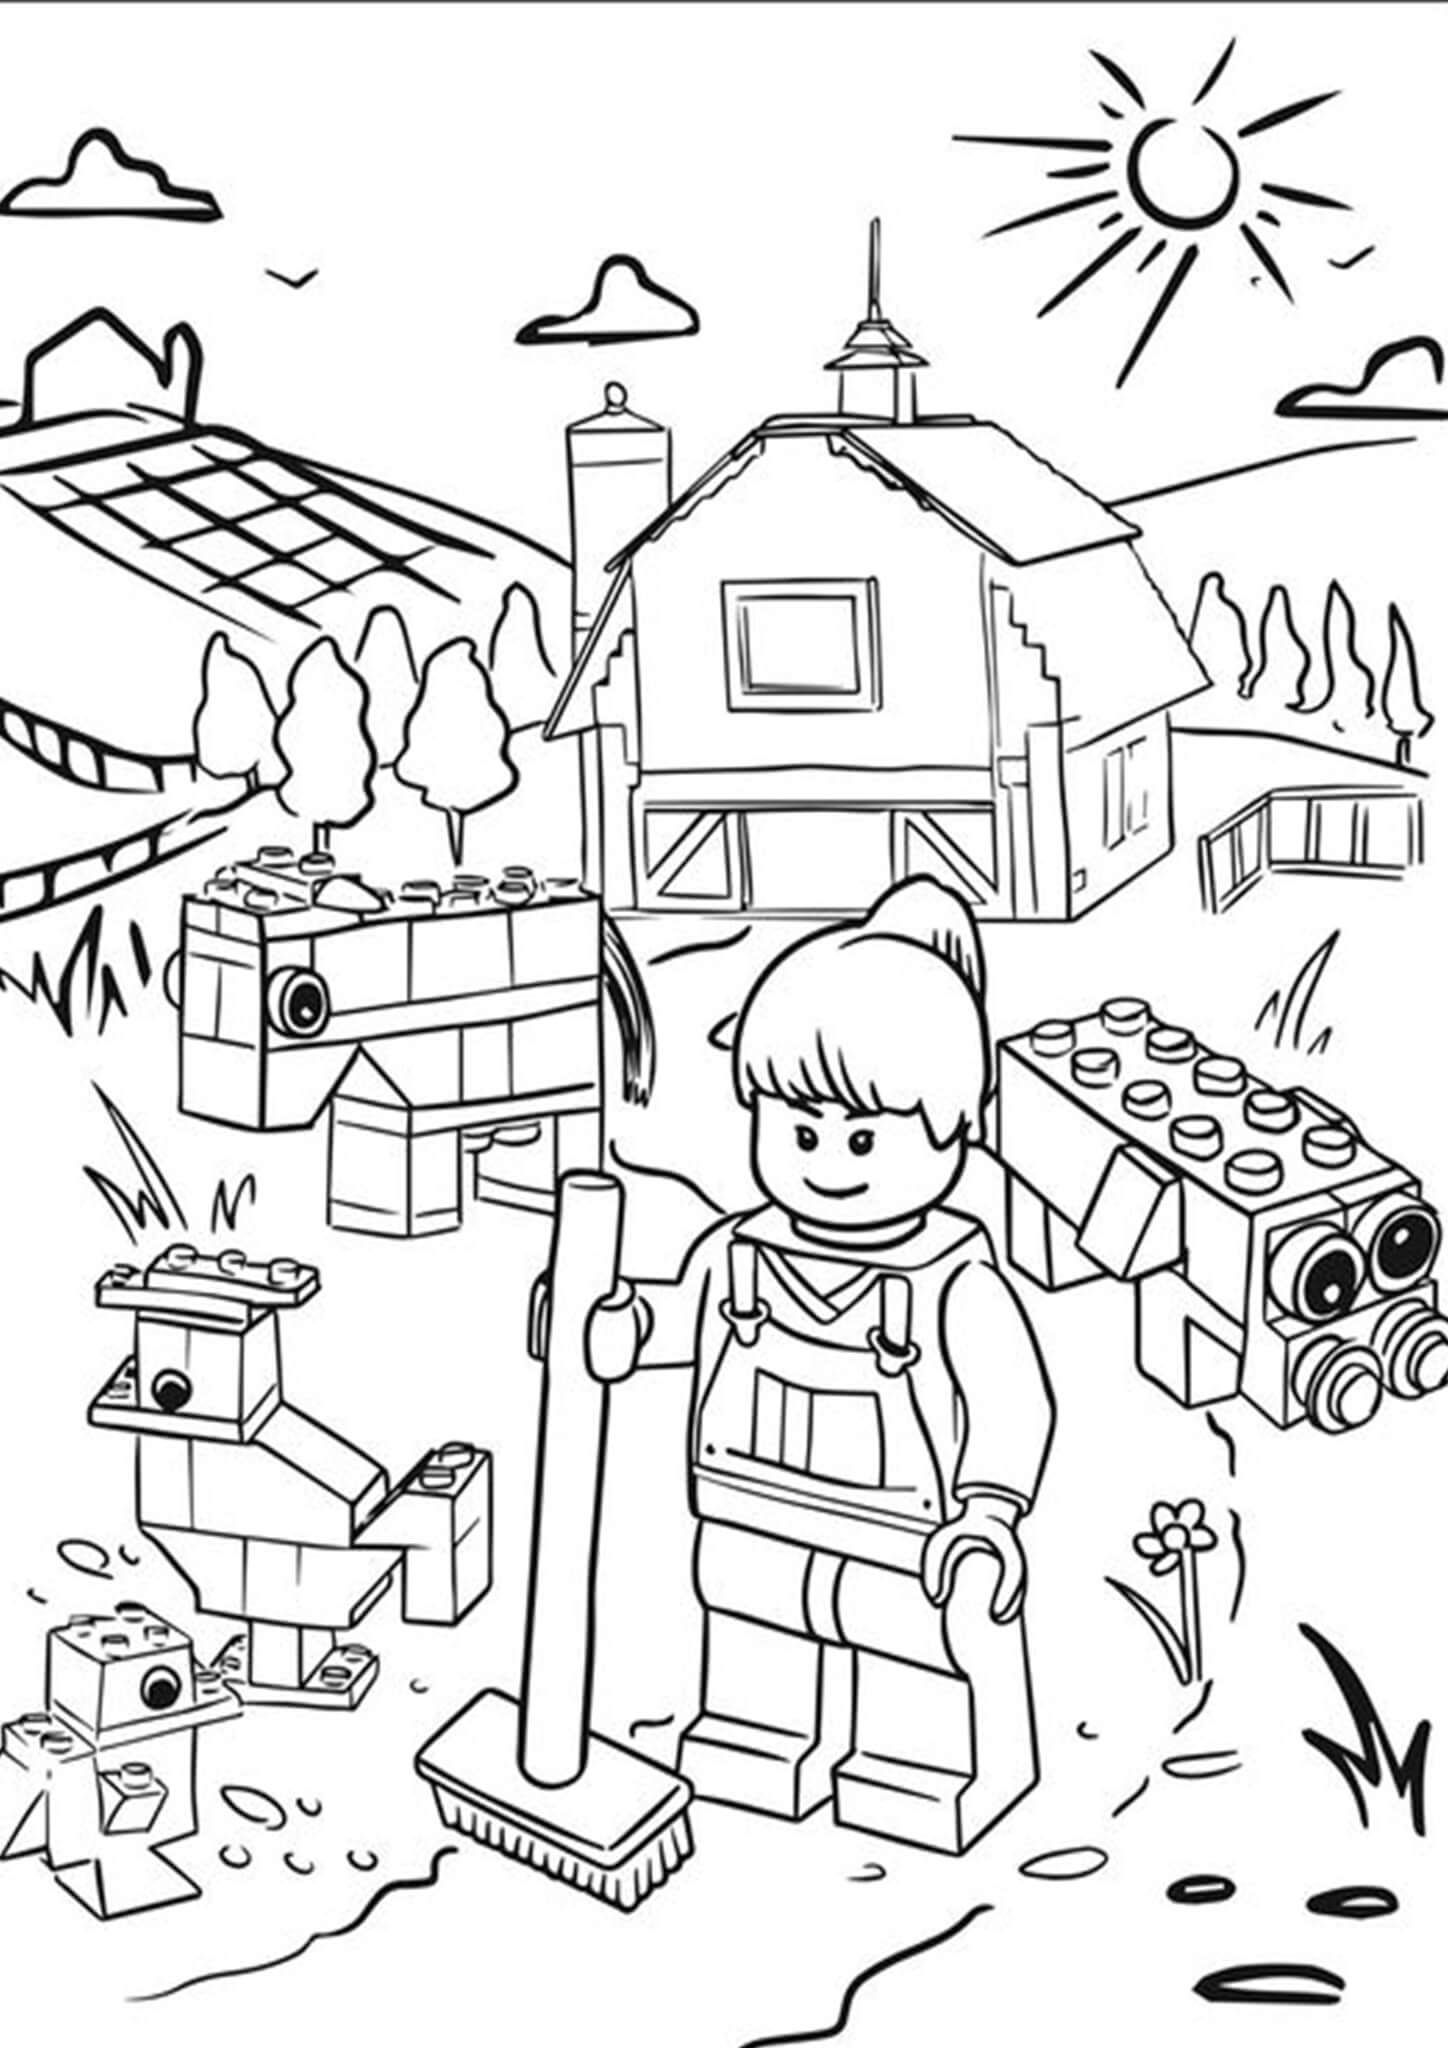 Free & Easy To Print Lego Coloring Pages  Lego coloring pages